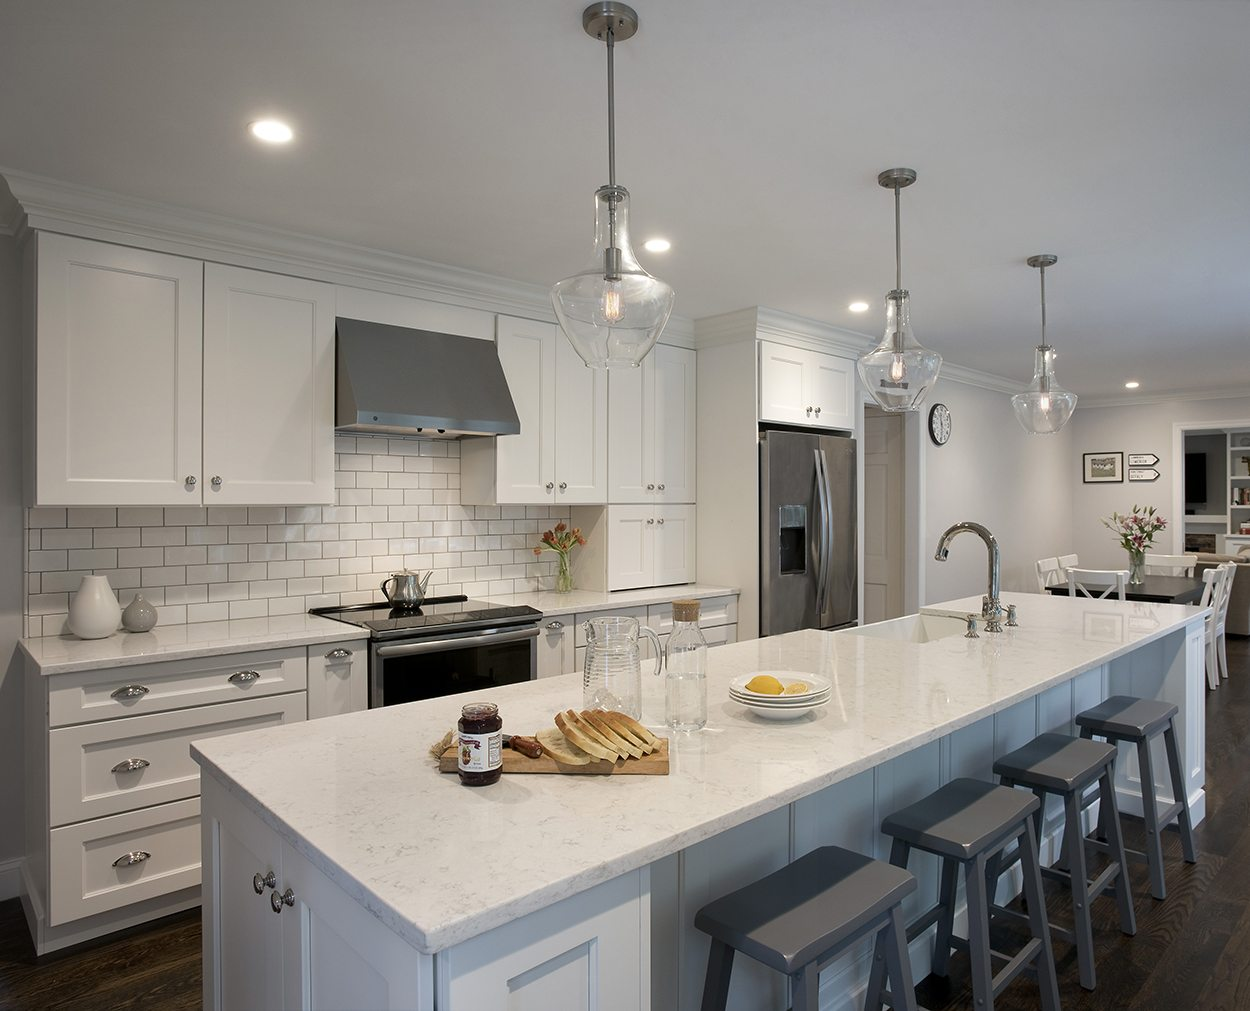 Kitchen design with white cabinets and a large island